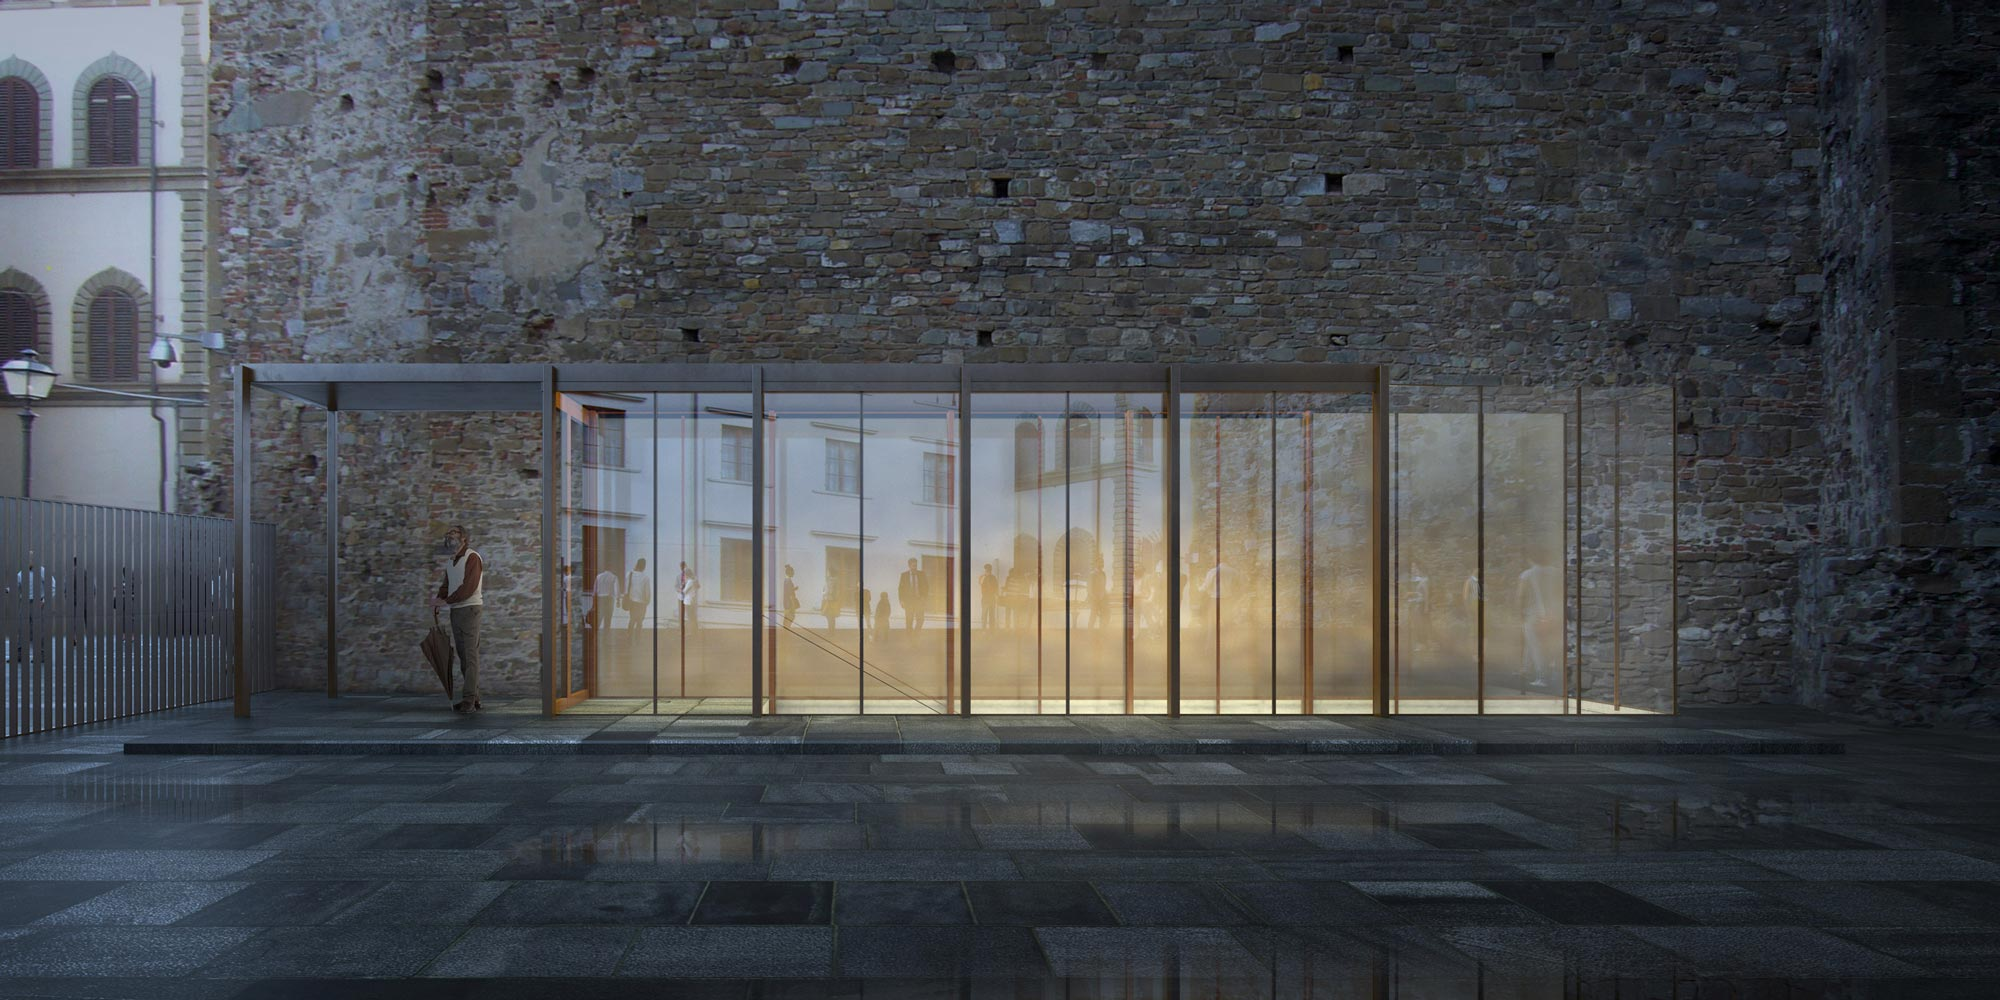 caruso_mainardi architetti | Square refurbishment, Florence (IT)